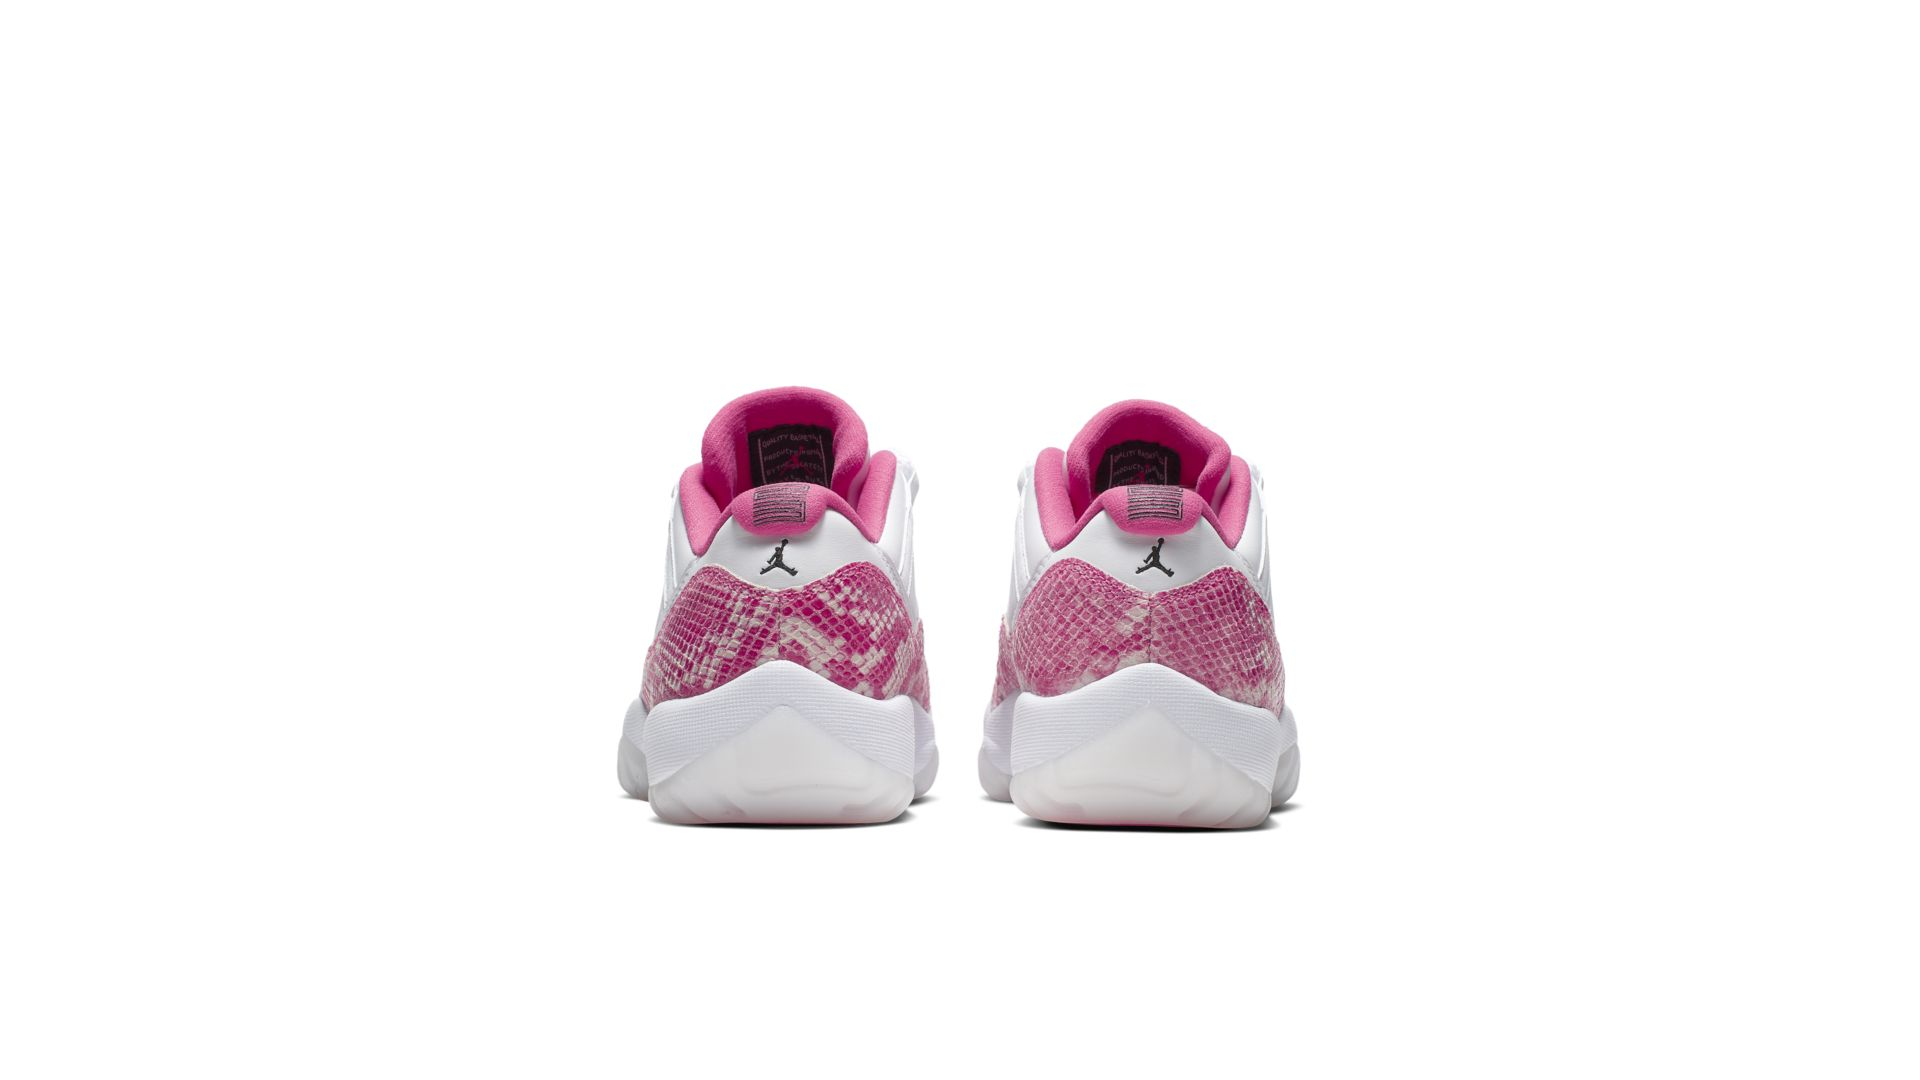 Air Jordan 11 Low WMNS 'Pink Snakeskin' (AH7860-106)